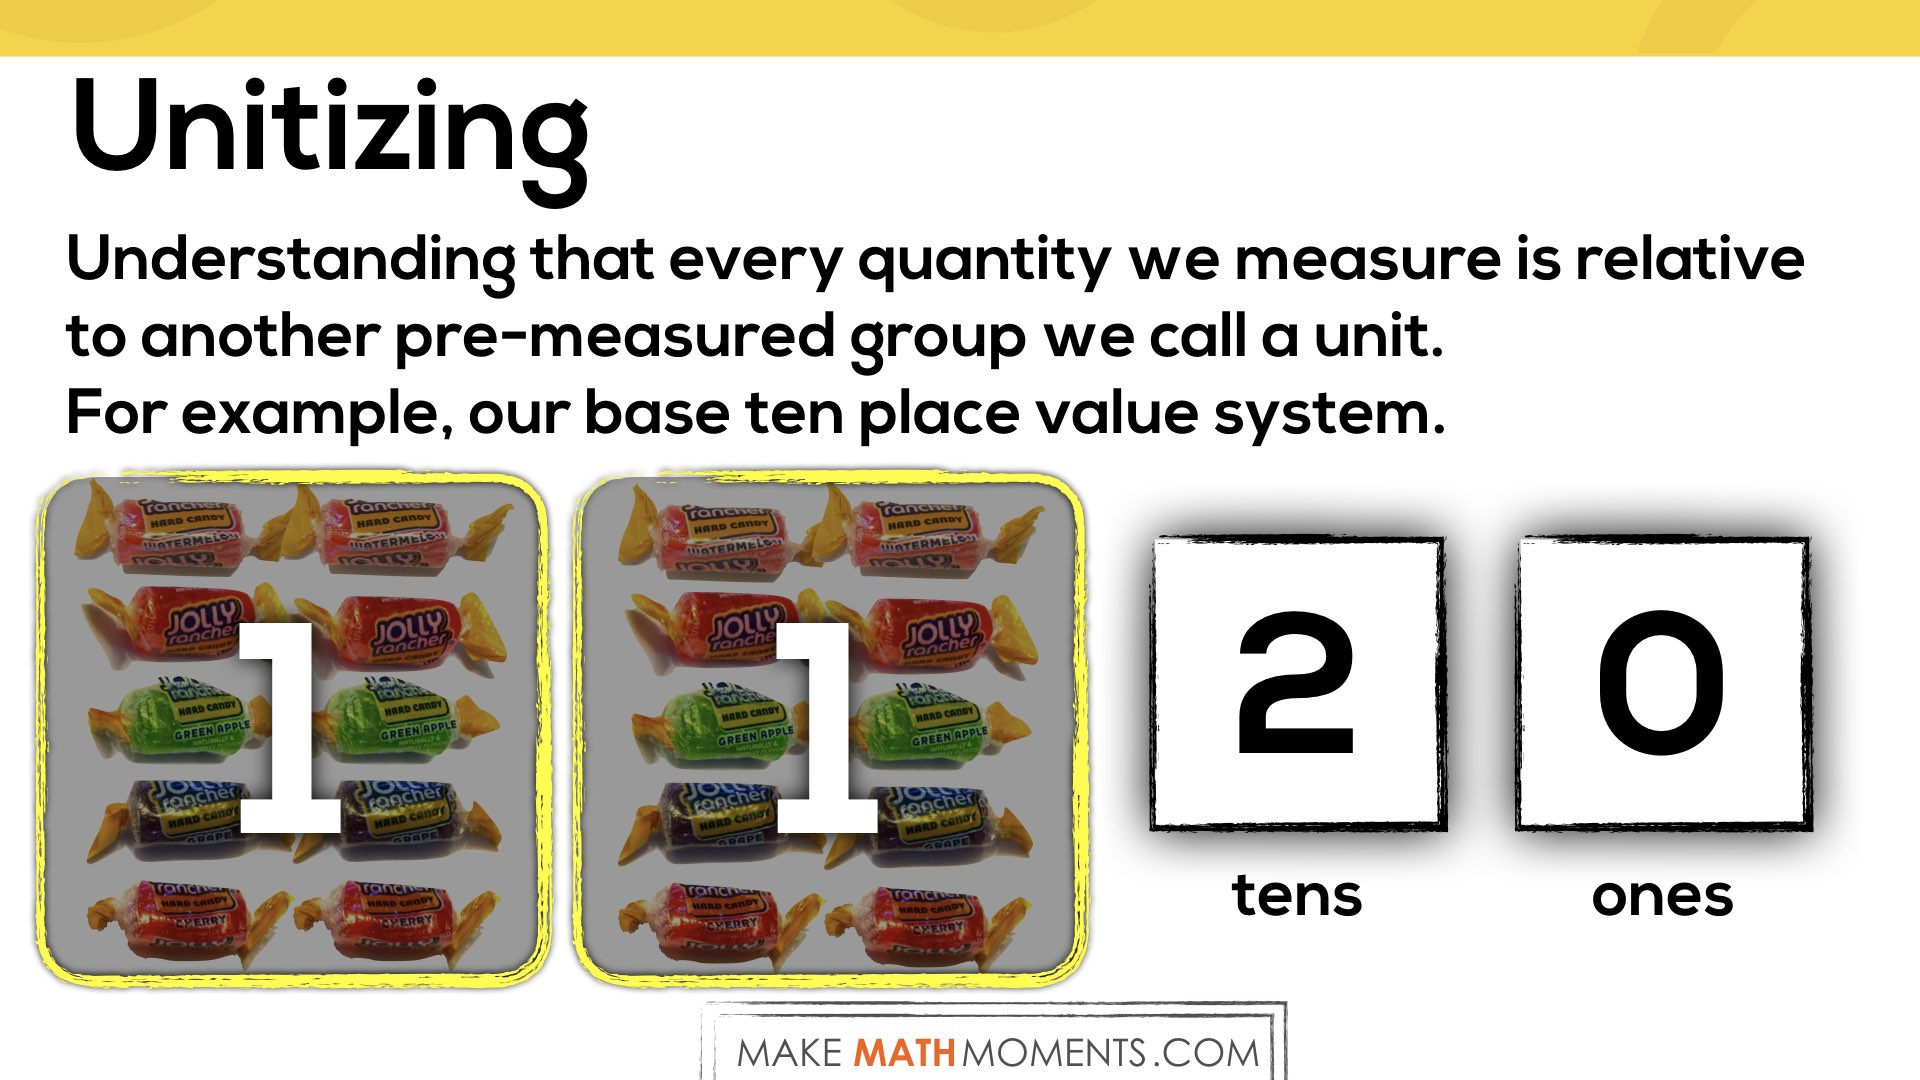 Why The Unit of Measure Matters.009 - one-to-many correspondence and base 10 place value